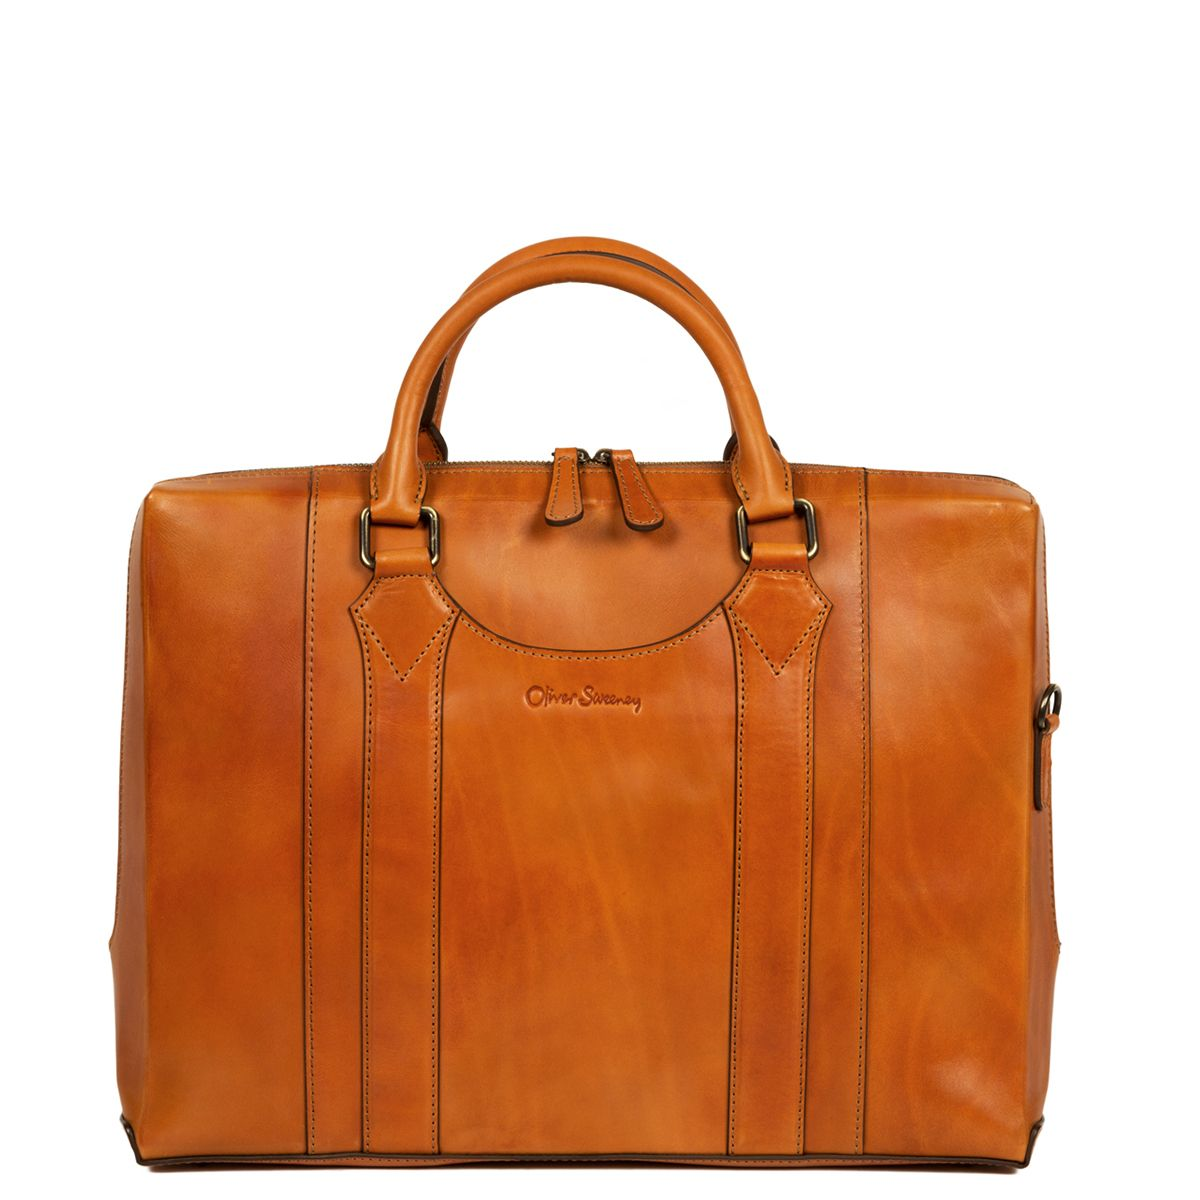 Oliver Sweeney Exeter Tan - Leather Laptop Bag